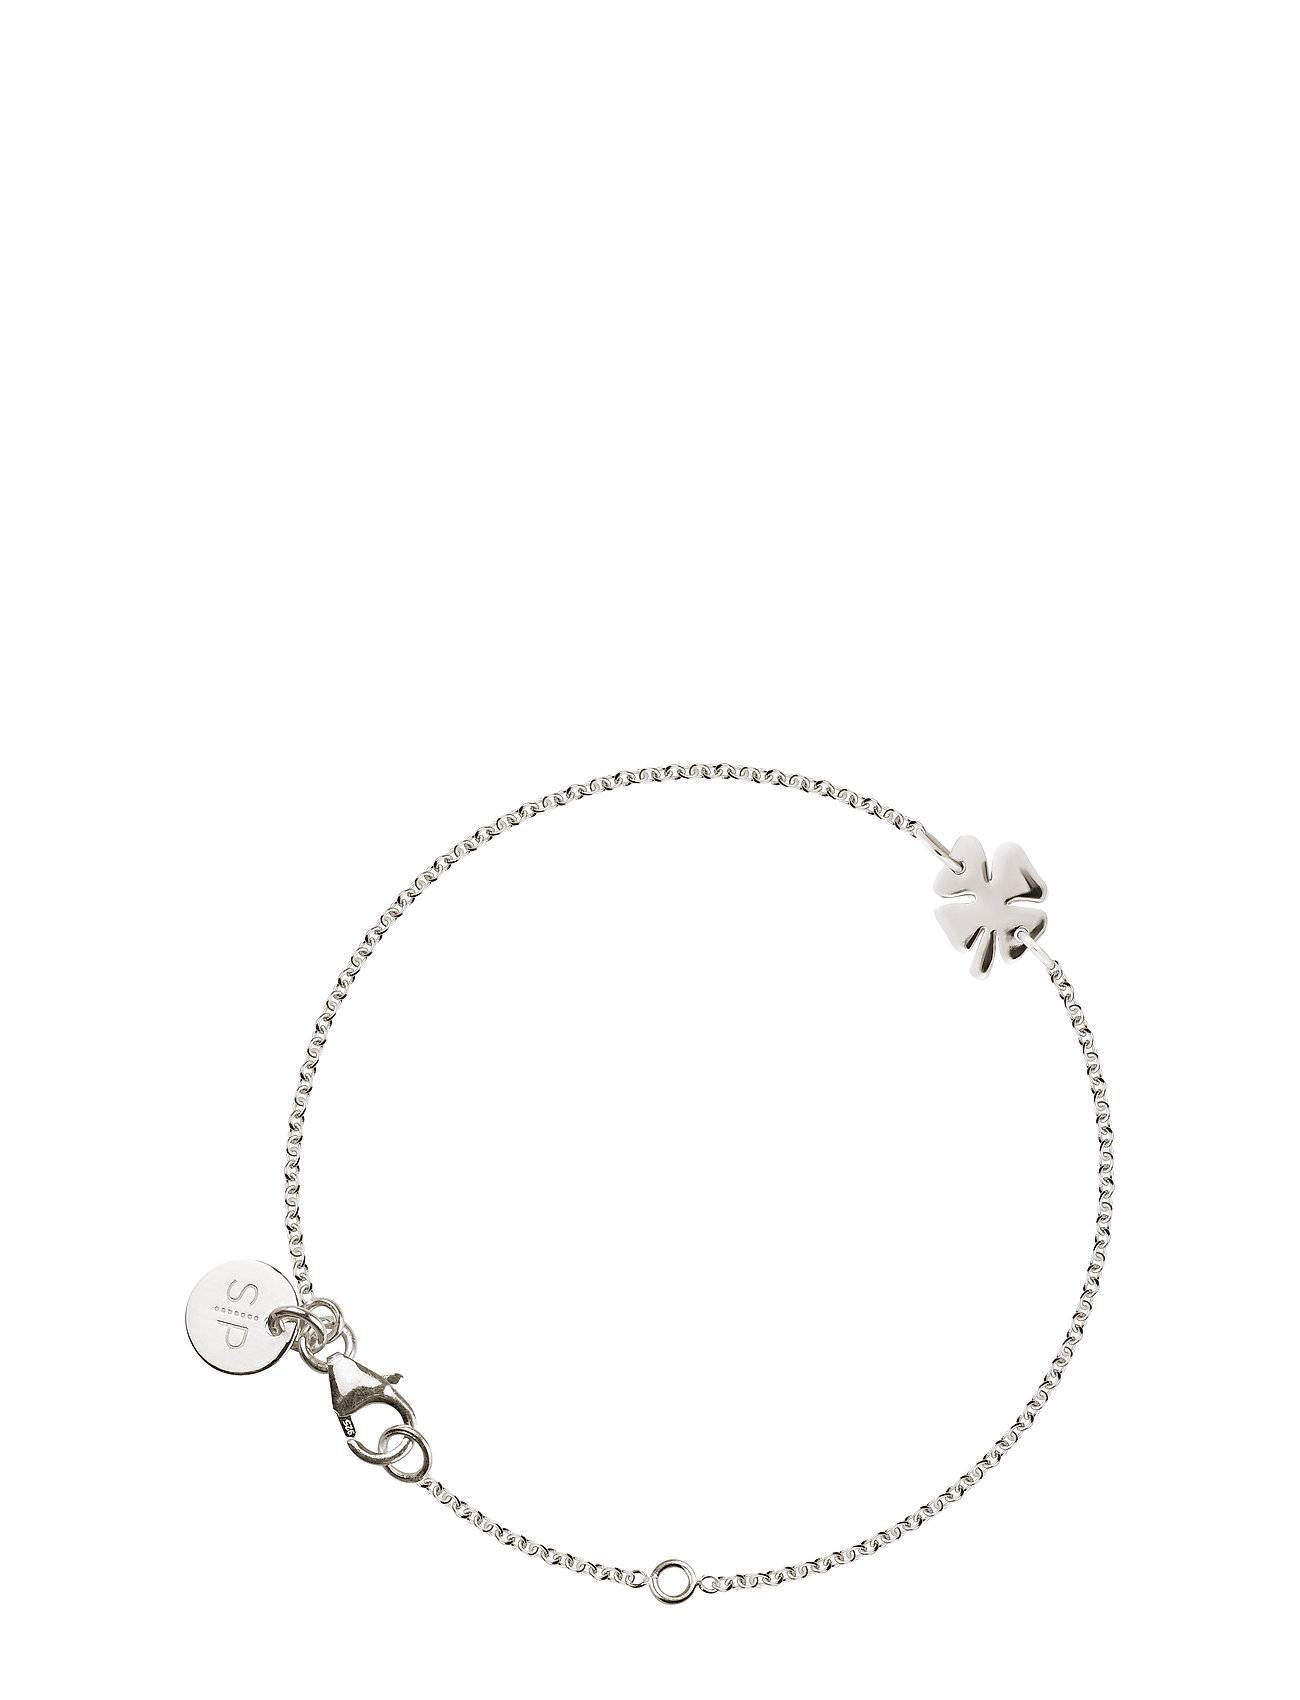 Syster P Bring Me Luck Bracelet Silver Accessories Jewellery Bracelets Chain Bracelets Hopea Syster P